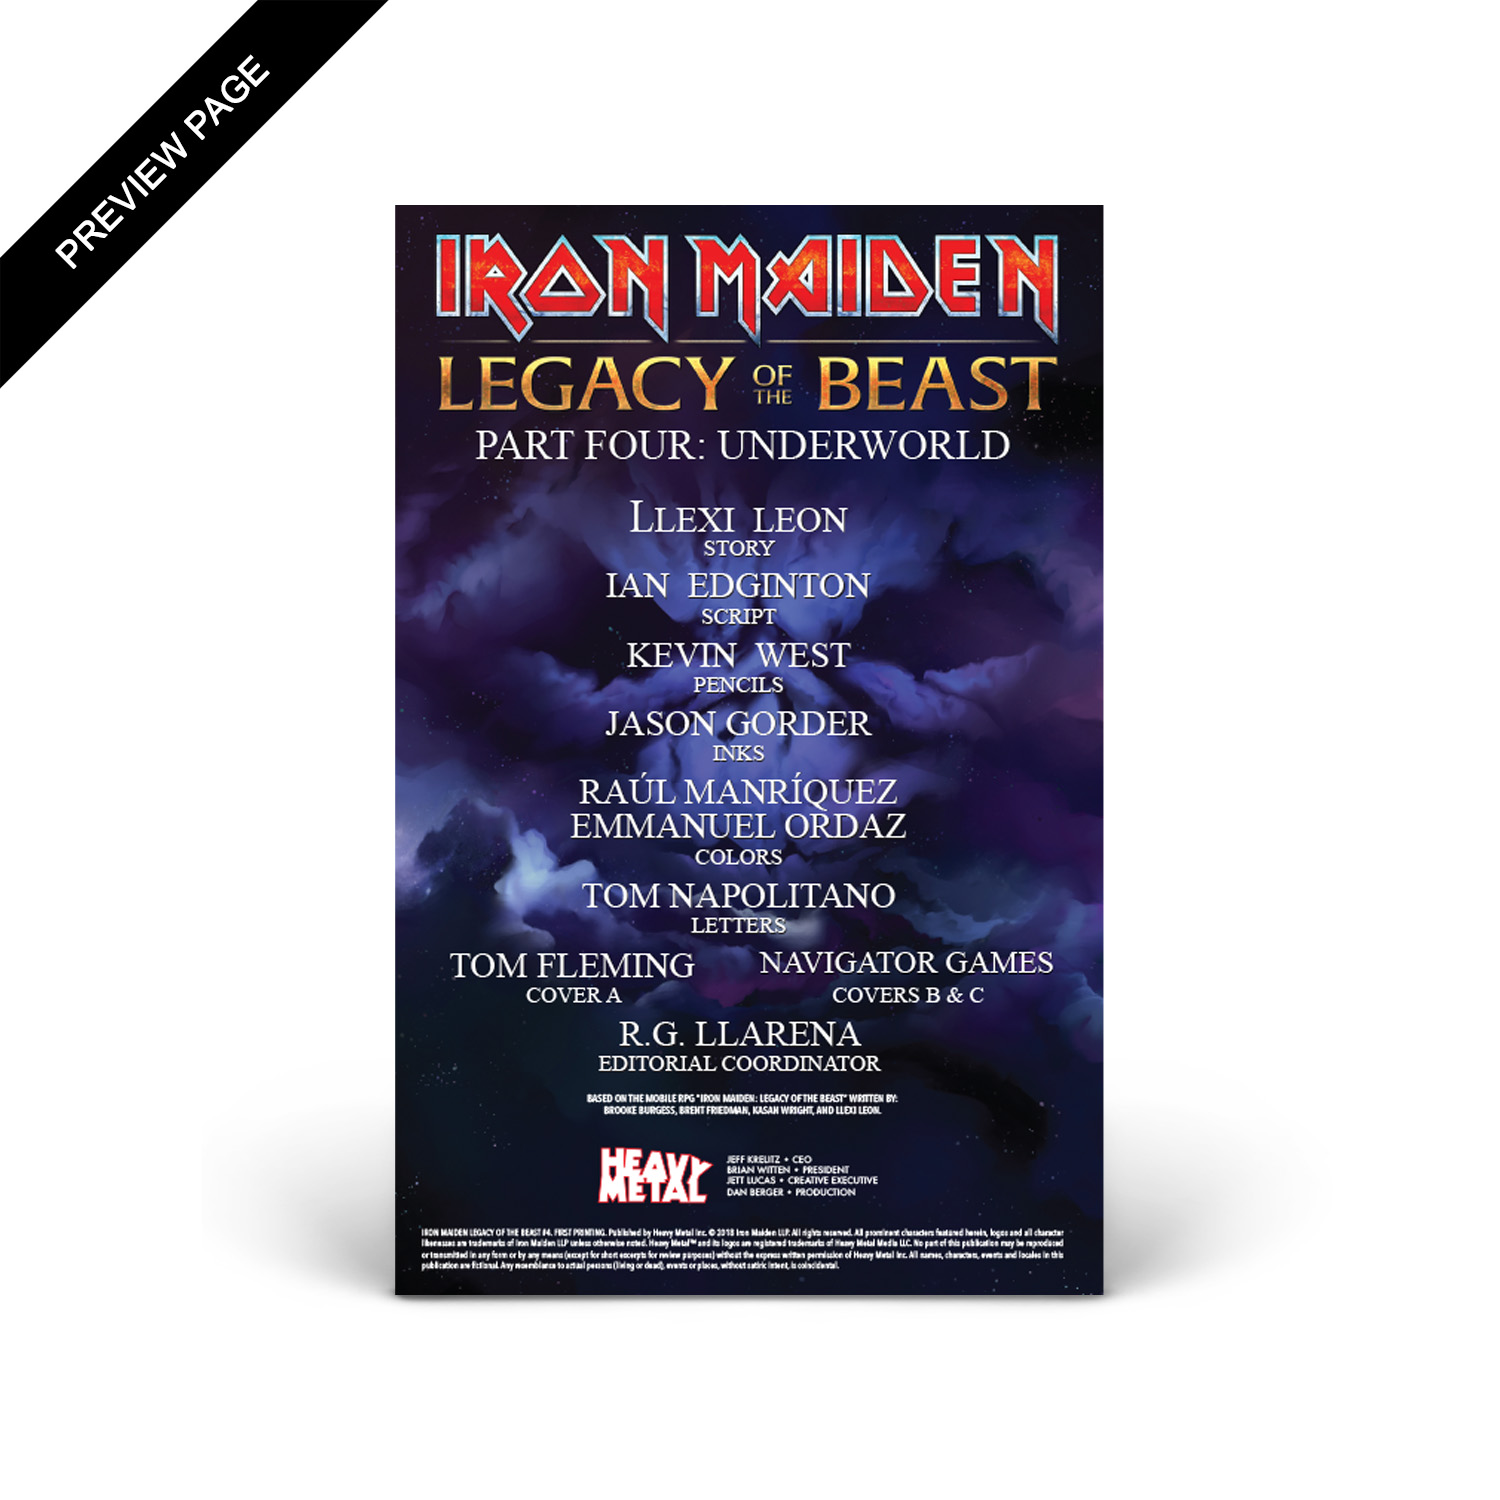 Iron Maiden - Legacy of the Beast - Volume 1 - Issue #4 - Cover C